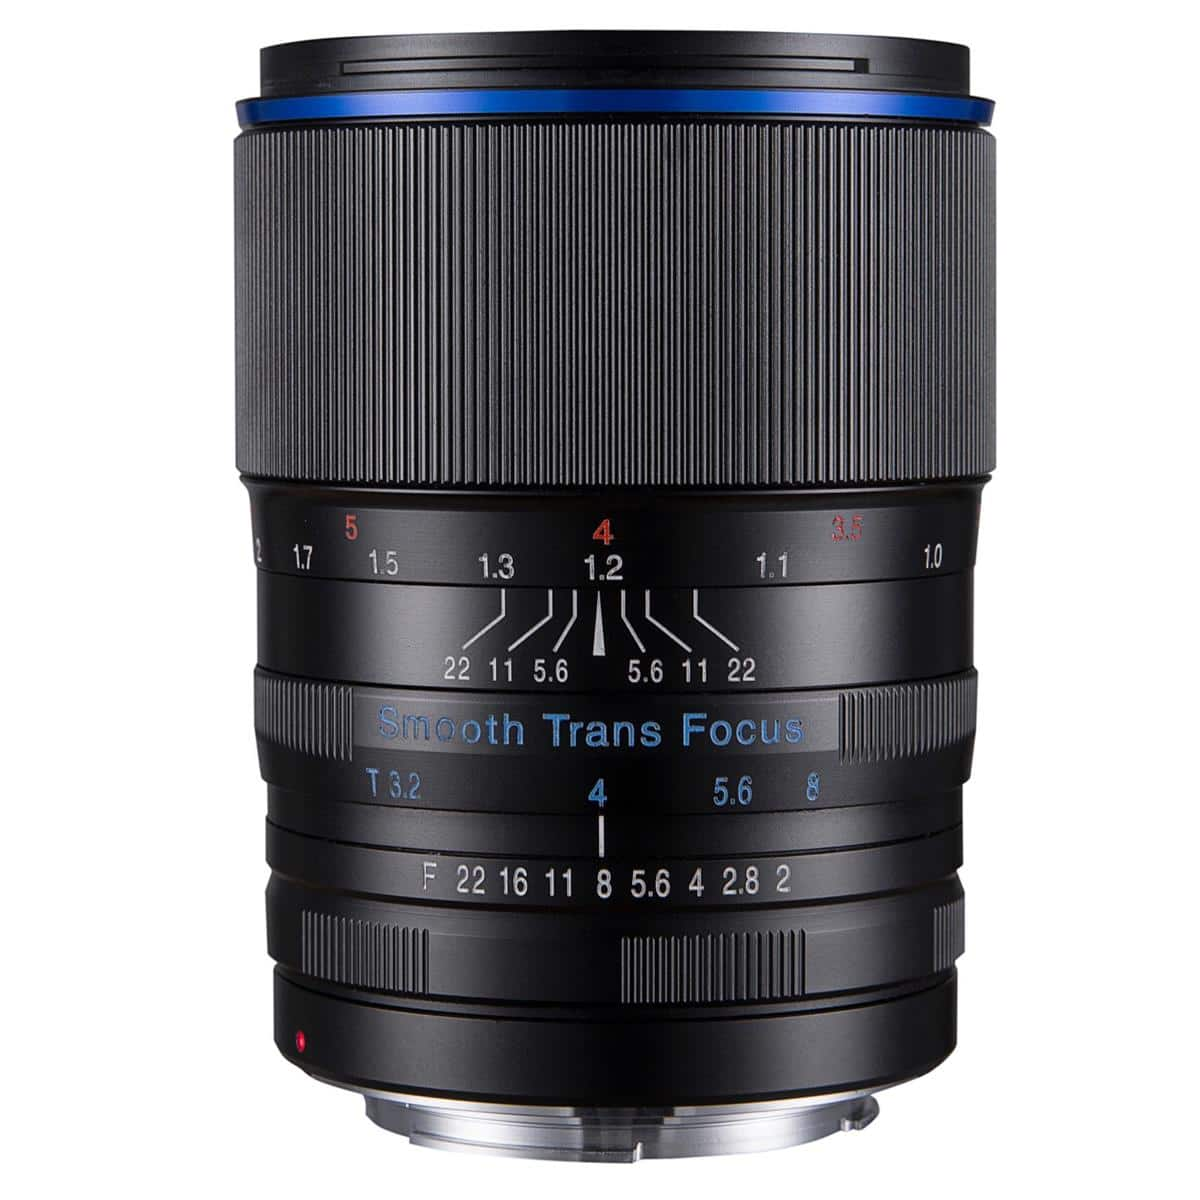 Venus Laowa 105mm f/2 (T/3.2) Smooth Trans Focus (manual focus) Lens $599 + free shipping (canon ef or nikon ai mount)